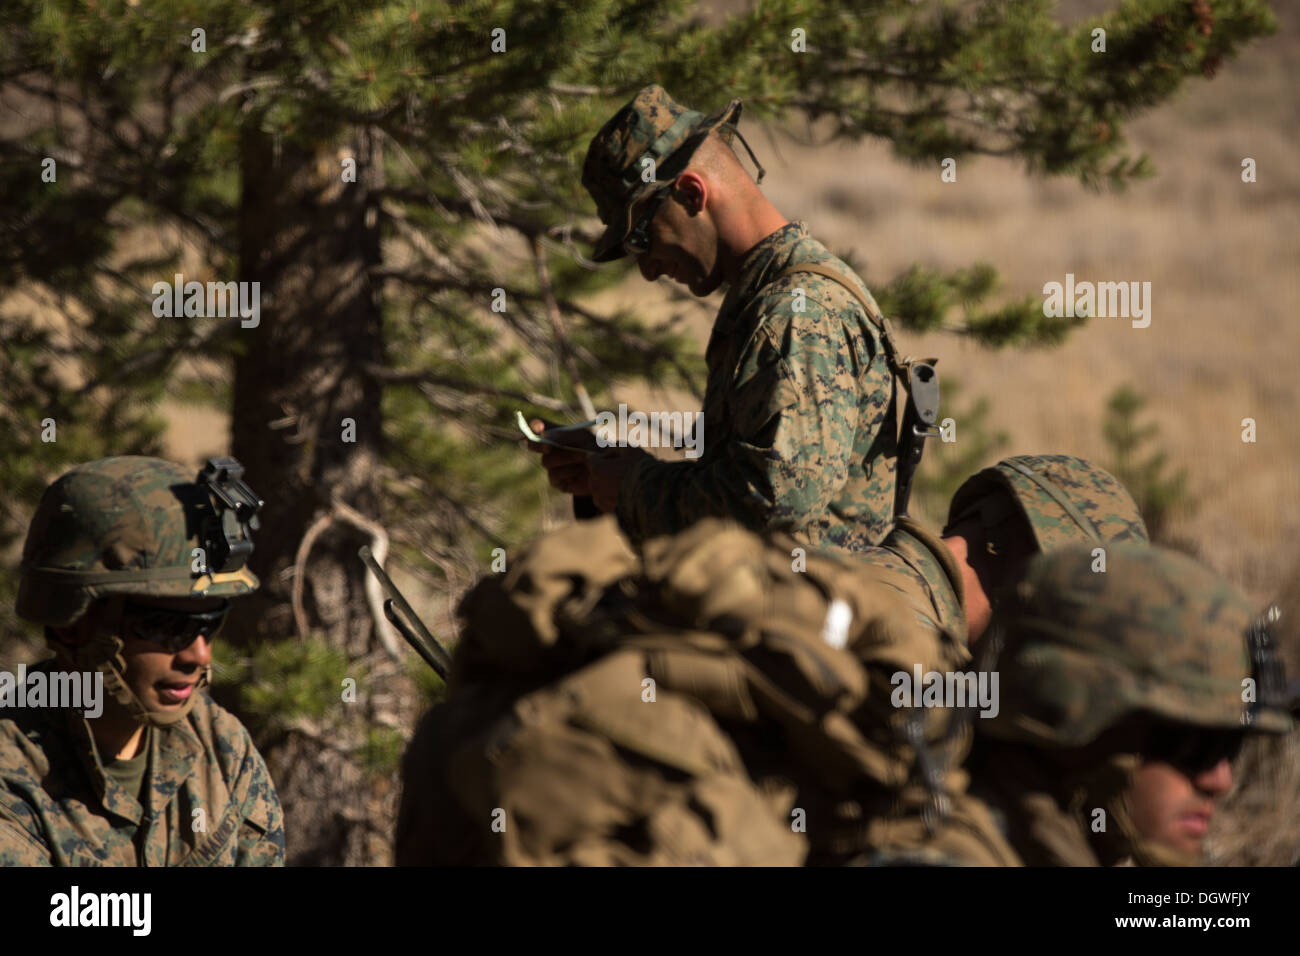 U.S. Marines from 1st Battalion, 5th Marine Regiment (1/5), 1st Marine Division from Camp Pendleton, Calif. wait at an extraction point at Marine Corps Mountain Warfare Training Center (MCMWTC) Bridgeport, California during Mountain Exercise (MTNEX) 6-13, - Stock Image